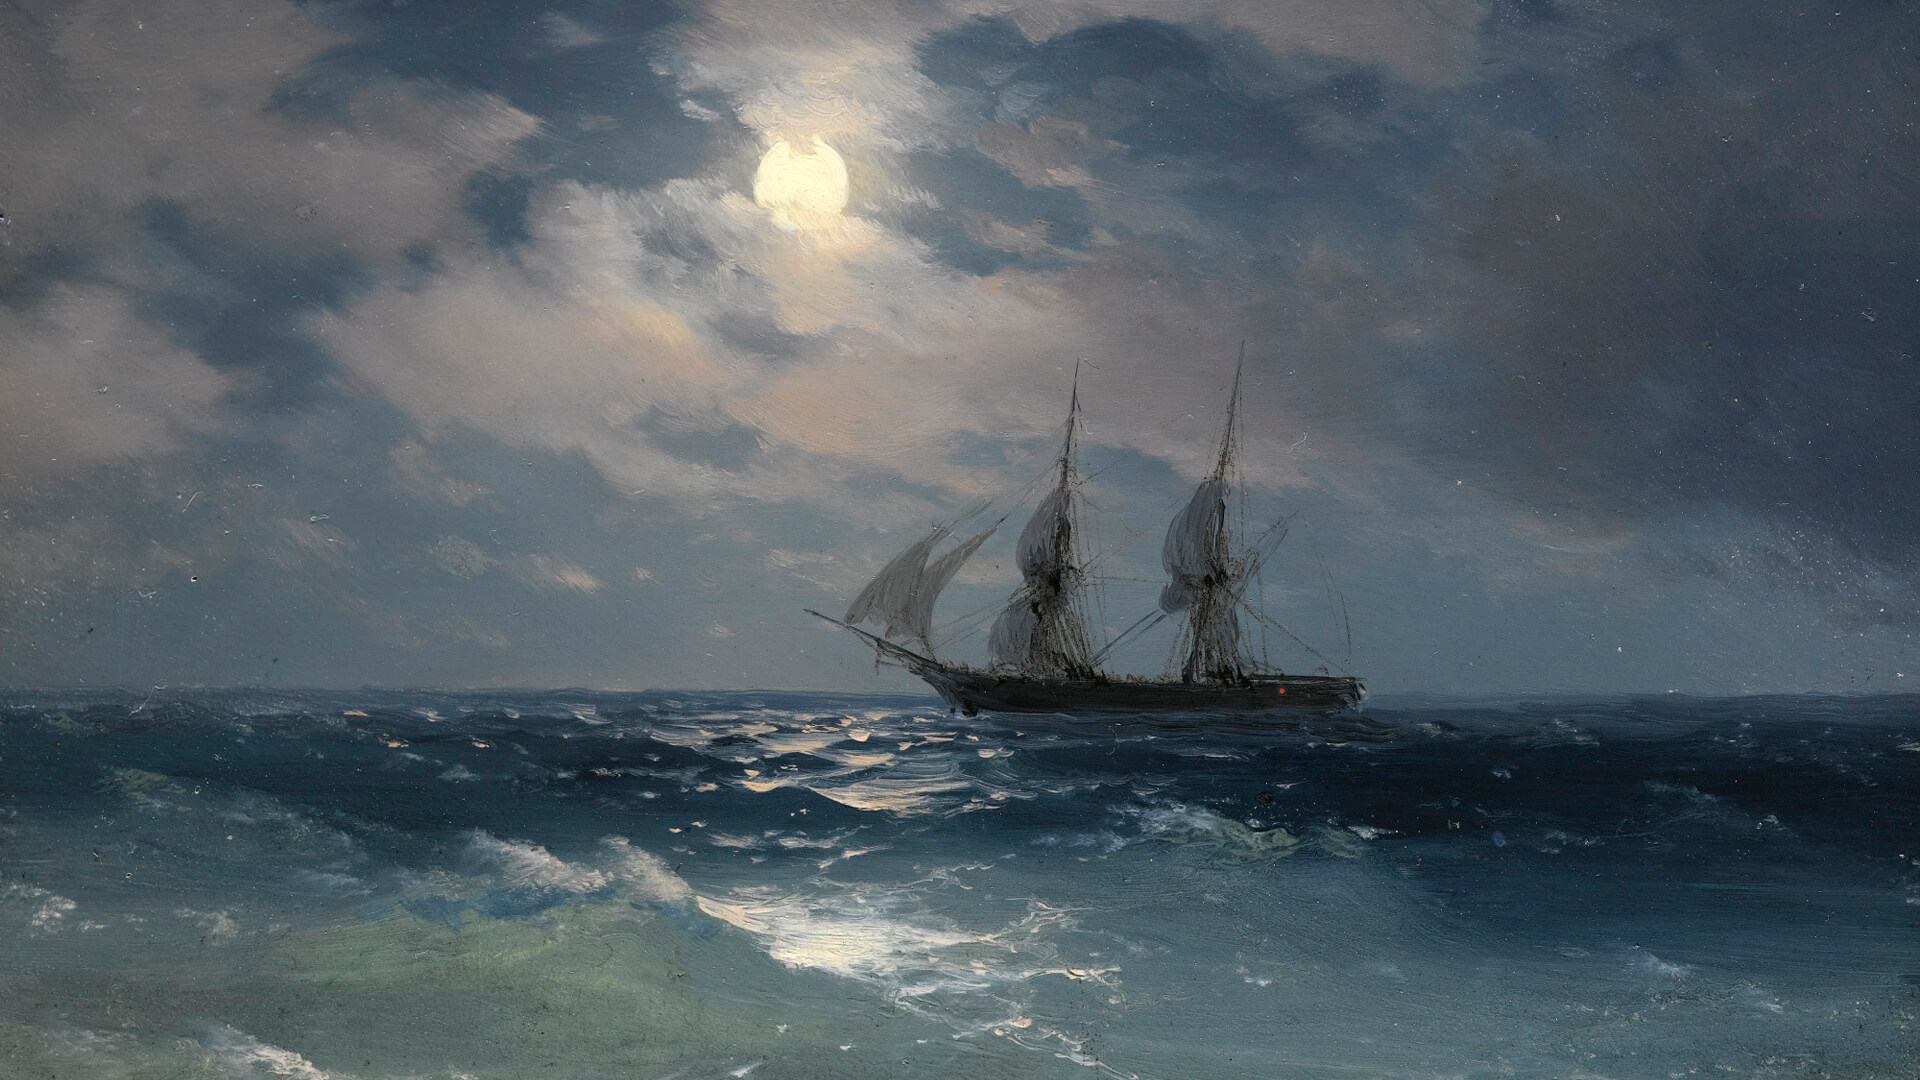 wallpaper Aivazovsky The Brig Mercury in Moonlight